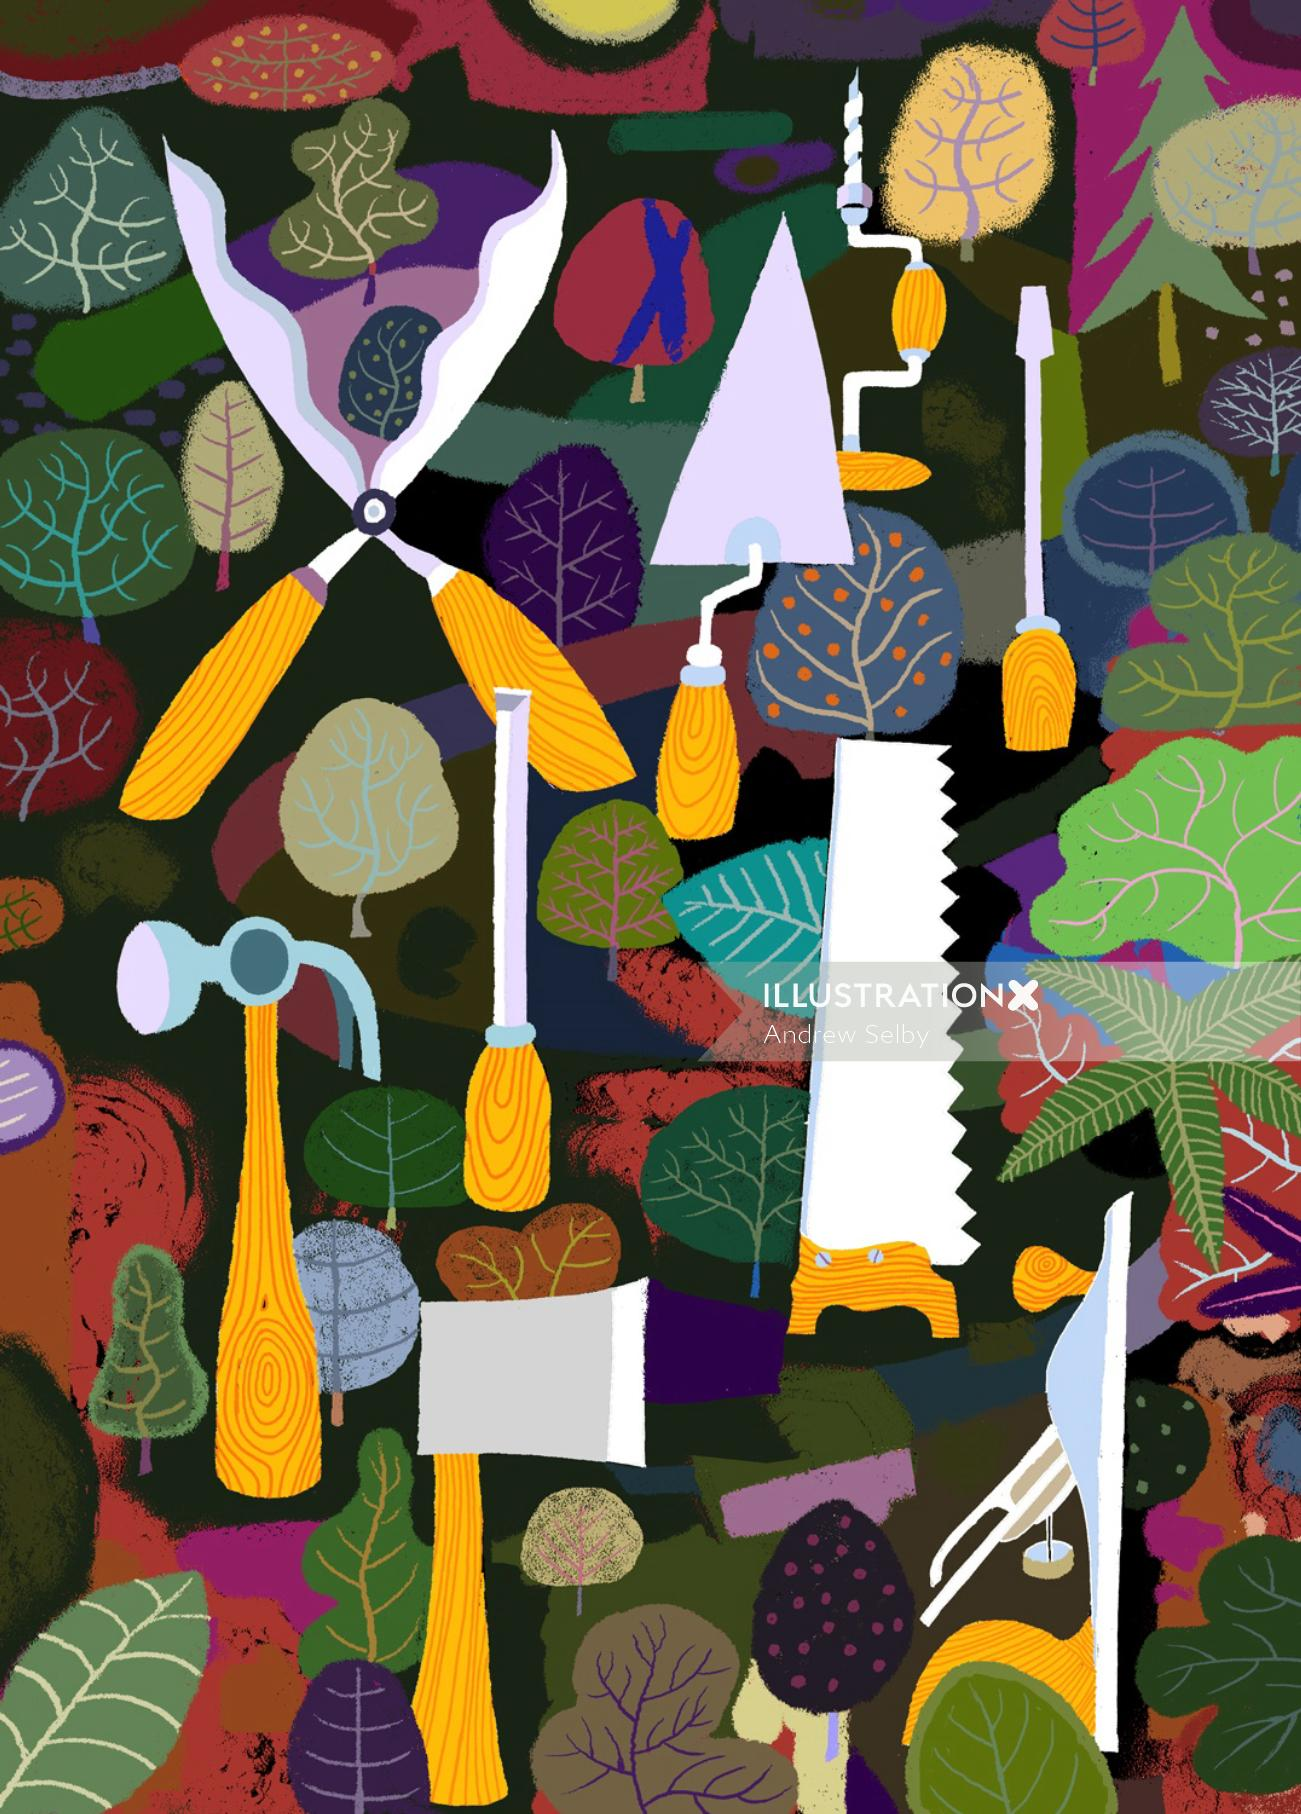 Tools in the forest